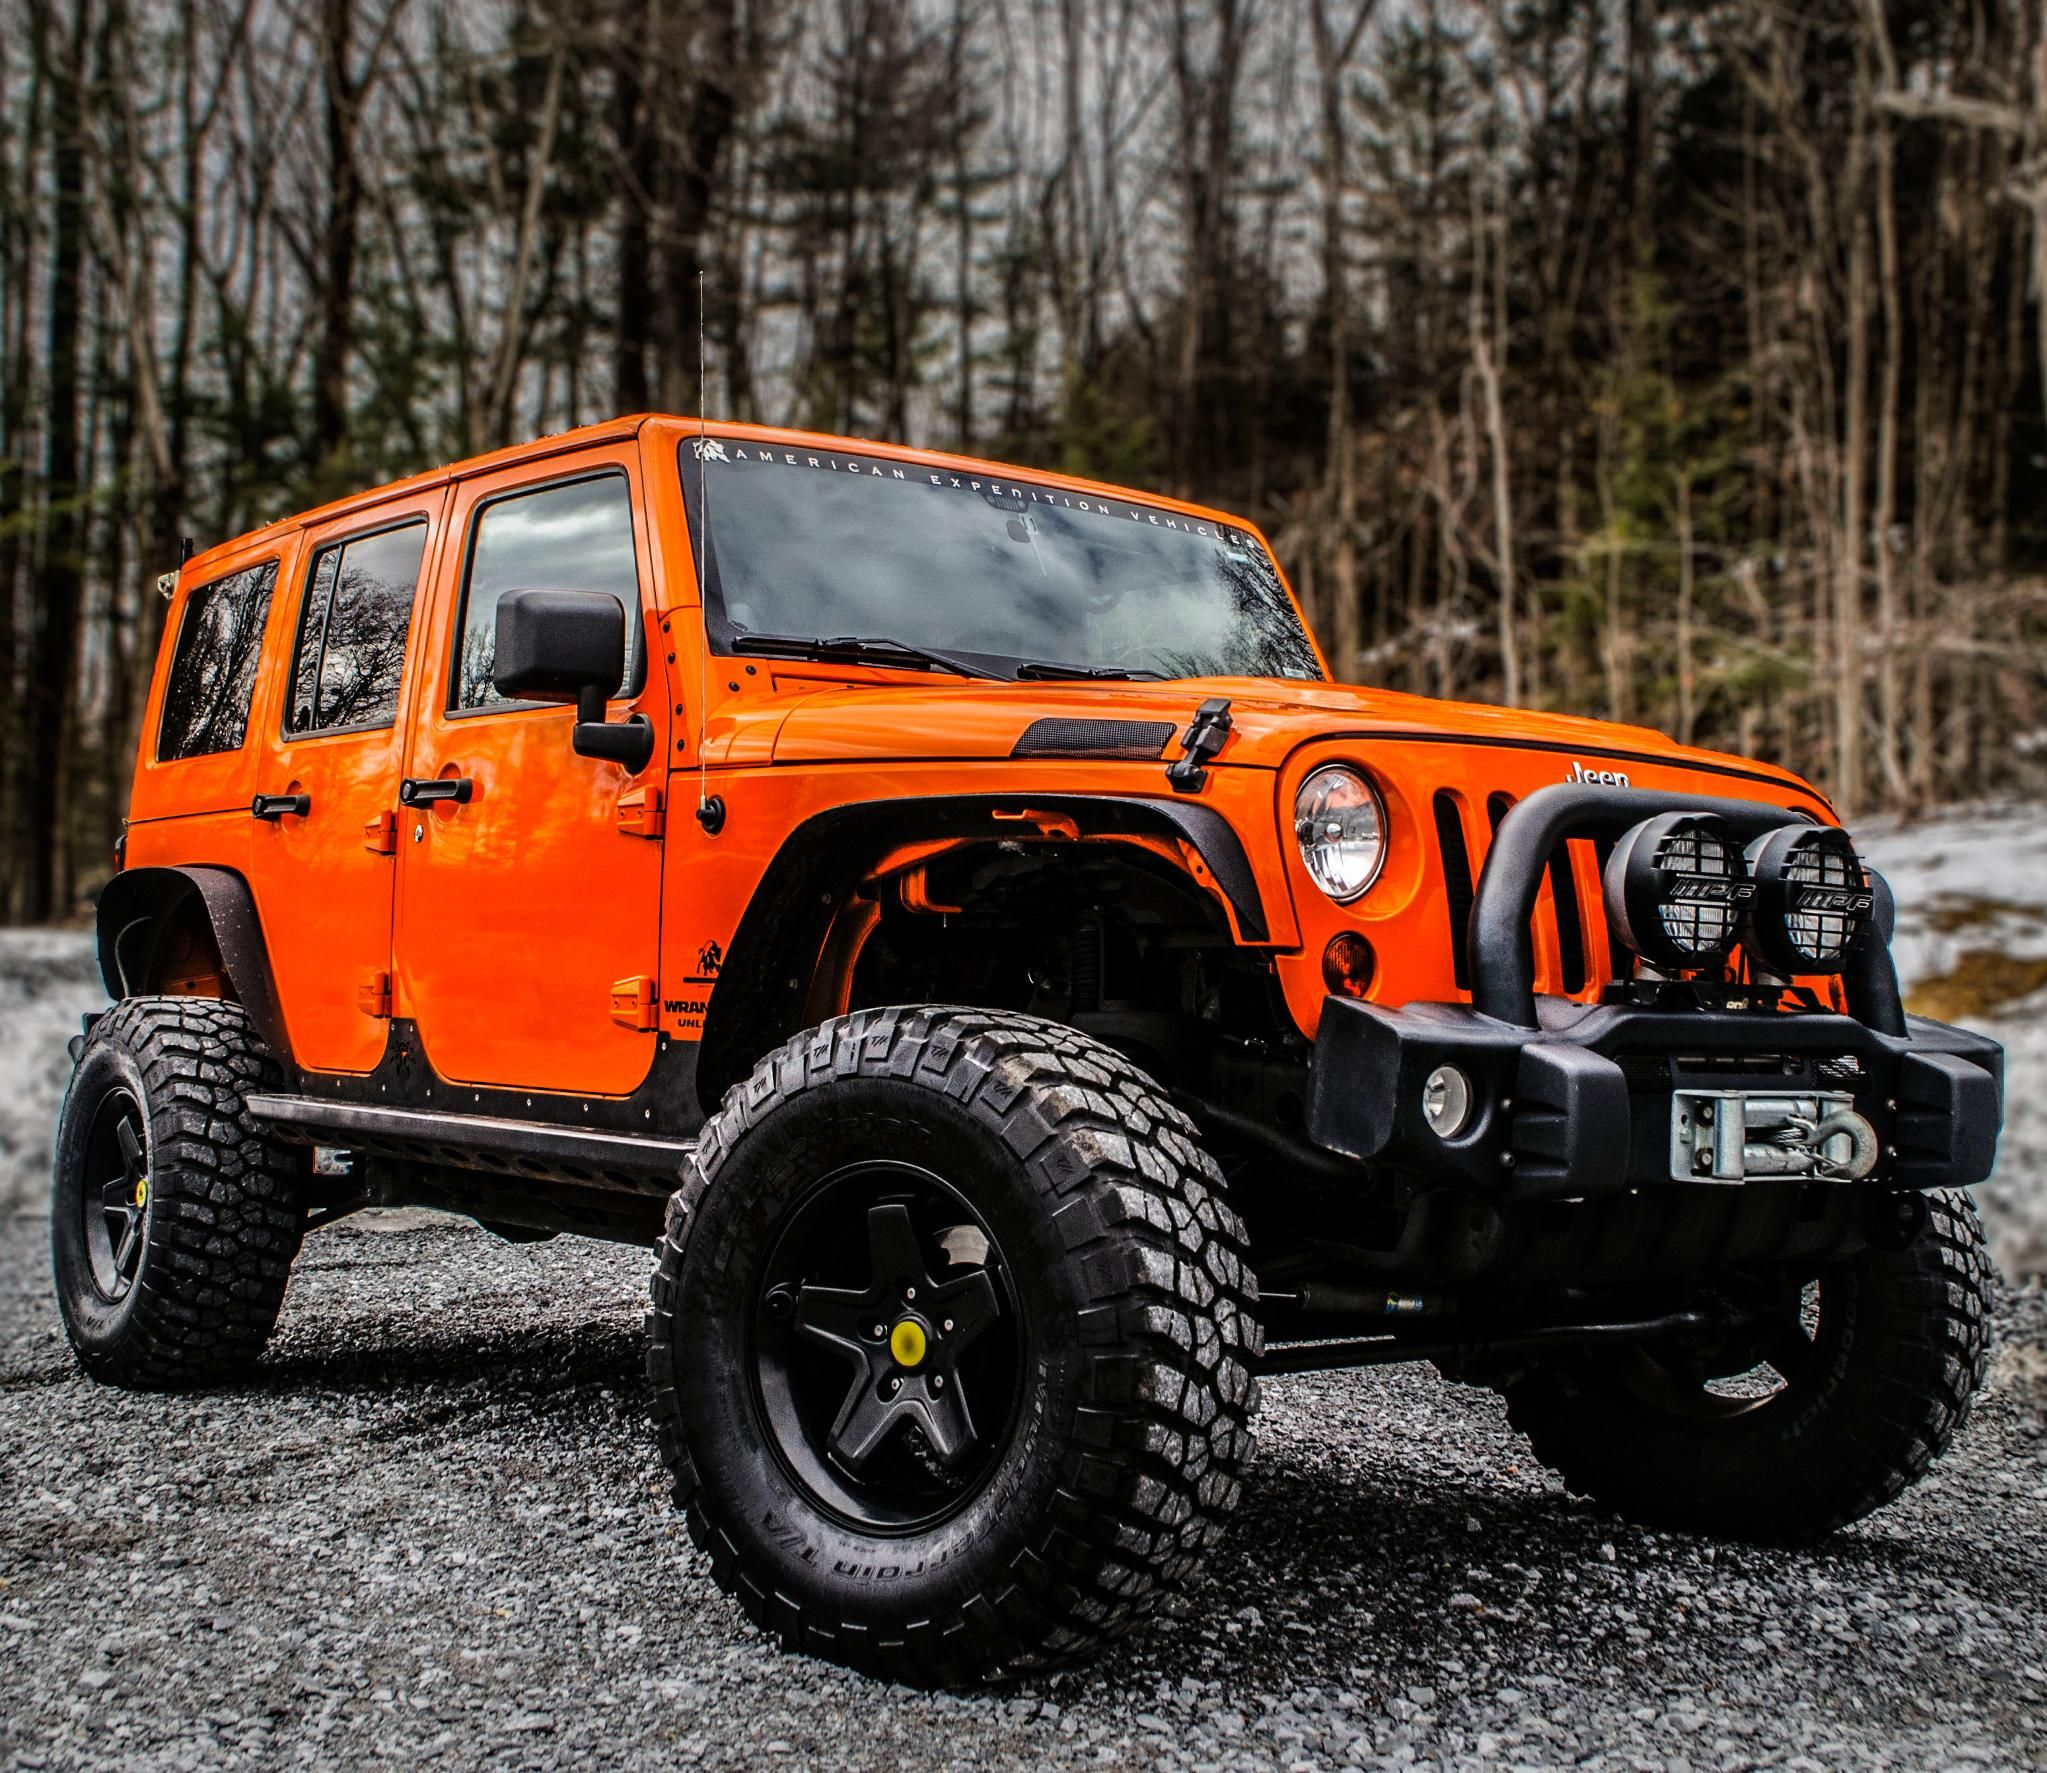 Jeep Parts and Accessories for your Wrangler JL JK TJ